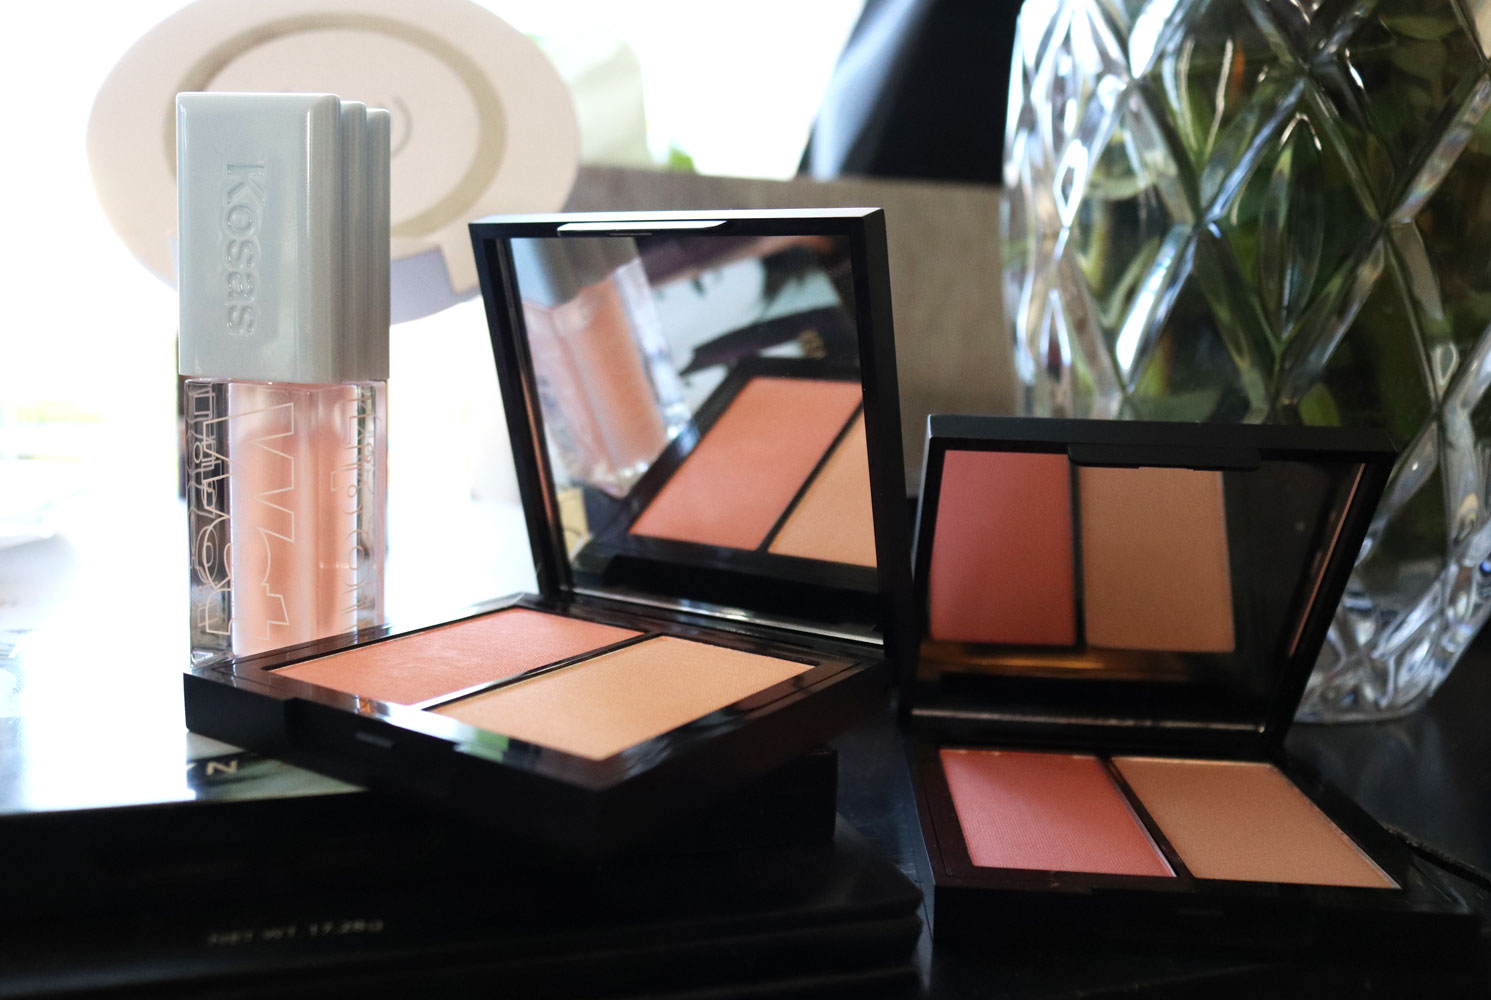 Kosas Color & Light blush and highlighter palettes